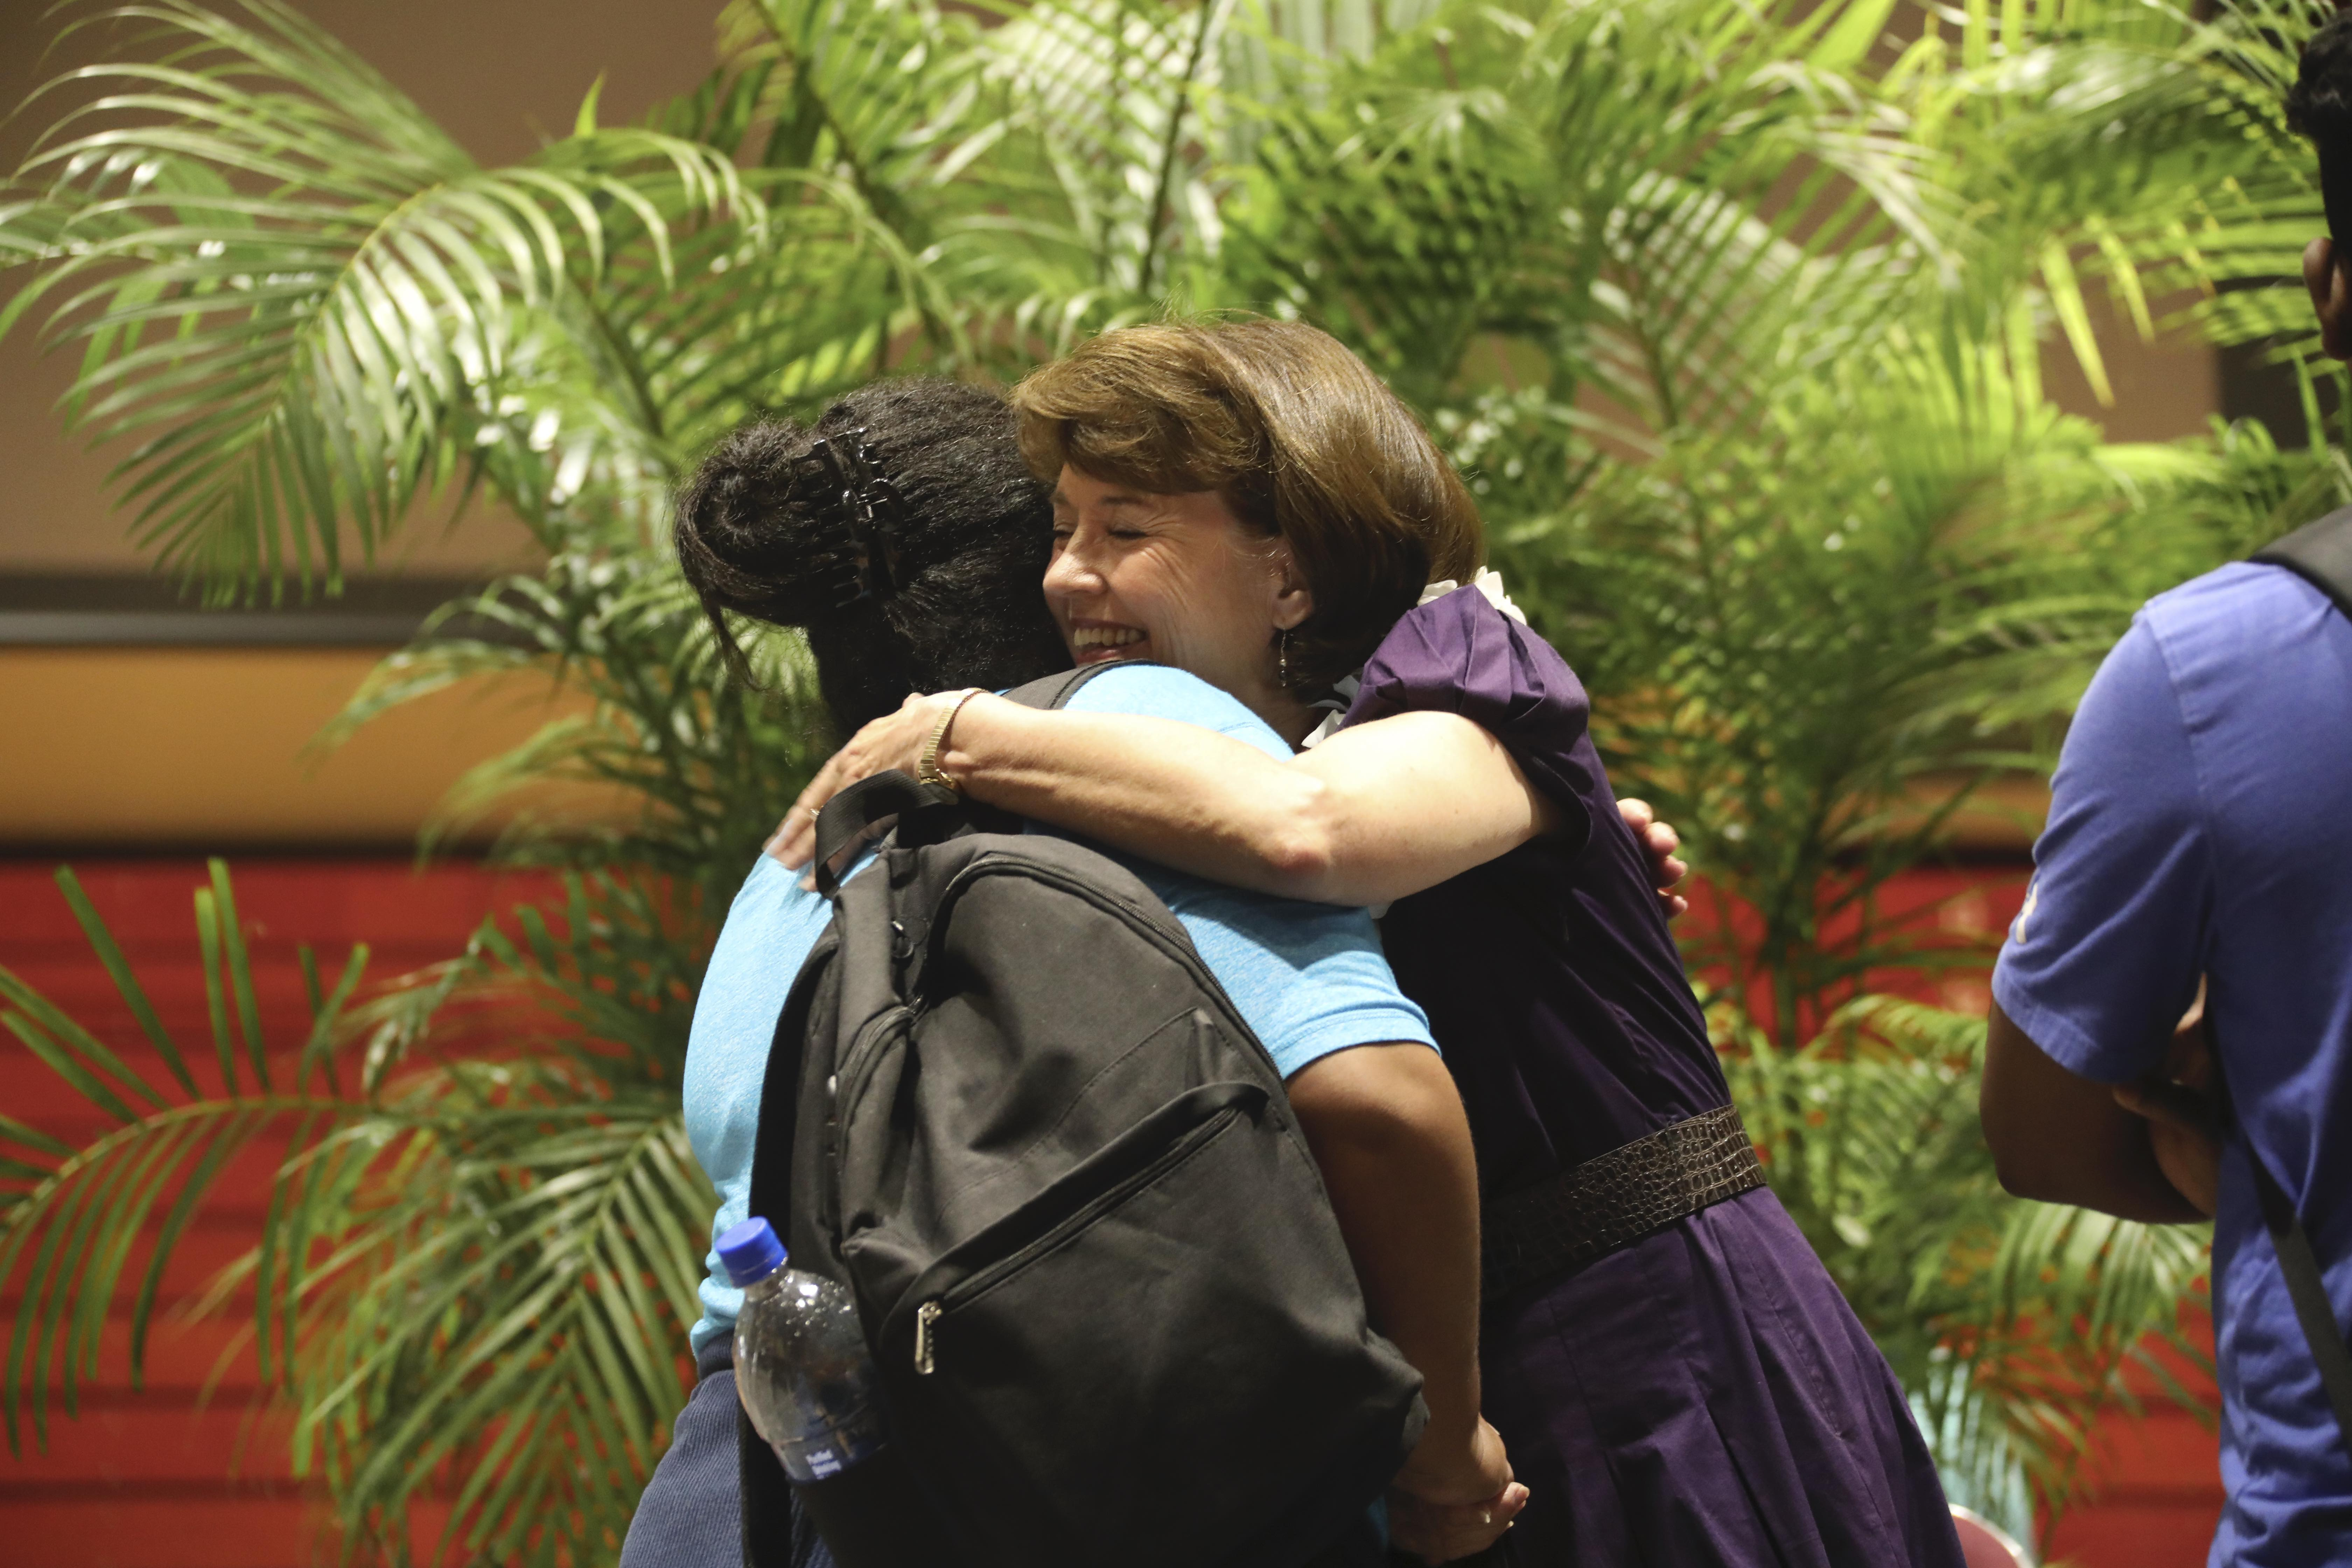 Sister Susan W. Tanner hugs a student at the BYU - Hawaii Devotional on September 10, 2019.